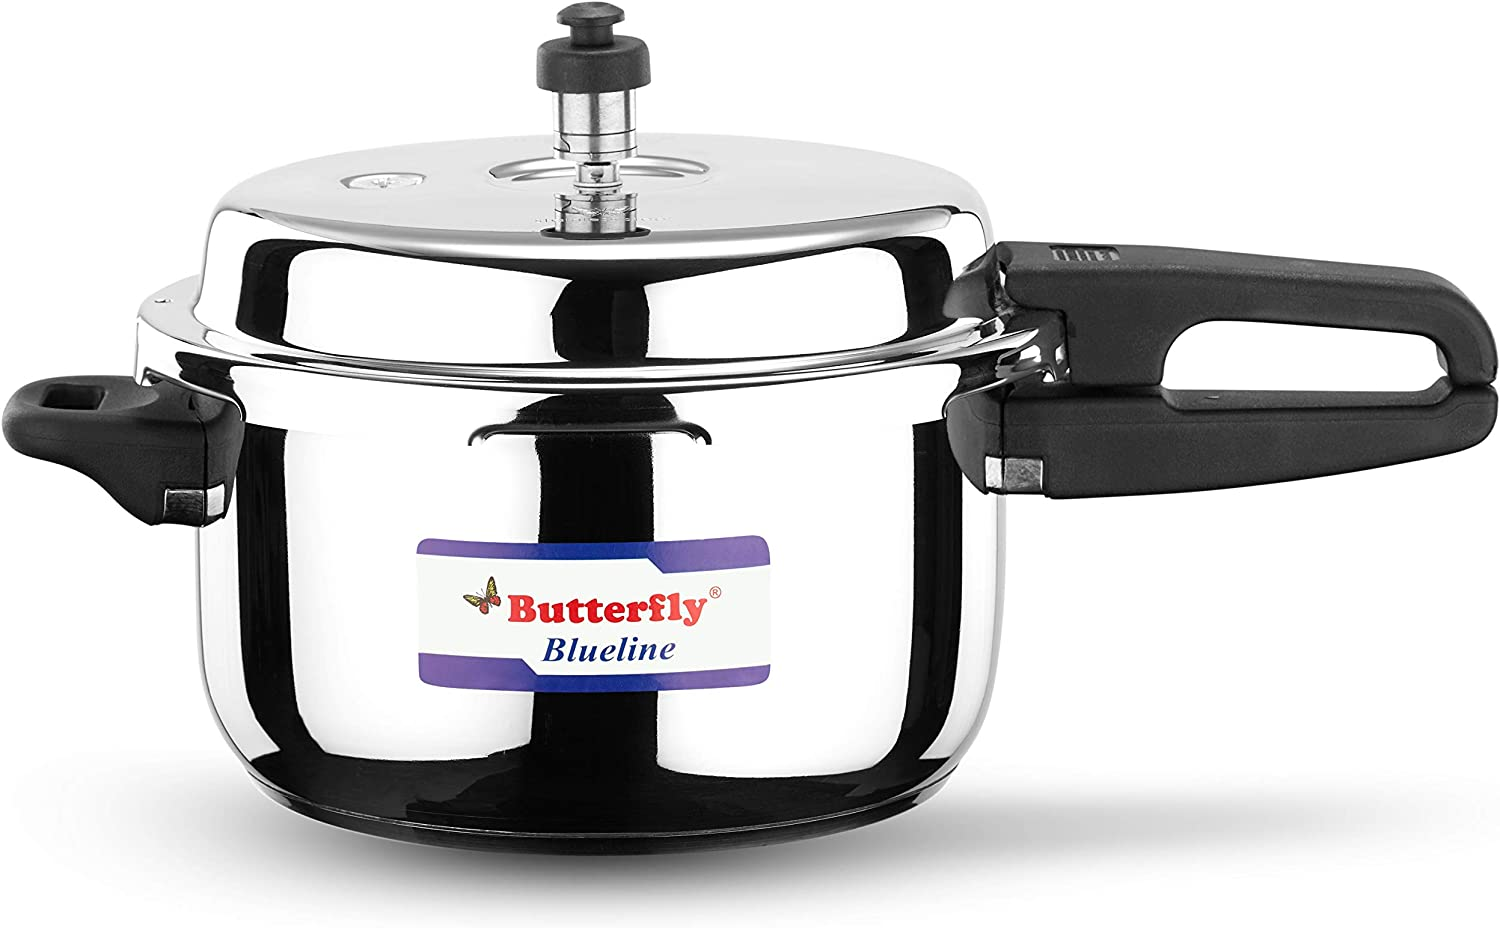 Butterfly Blue Line Stainless Steel Pressure Cooker, 5-Liter